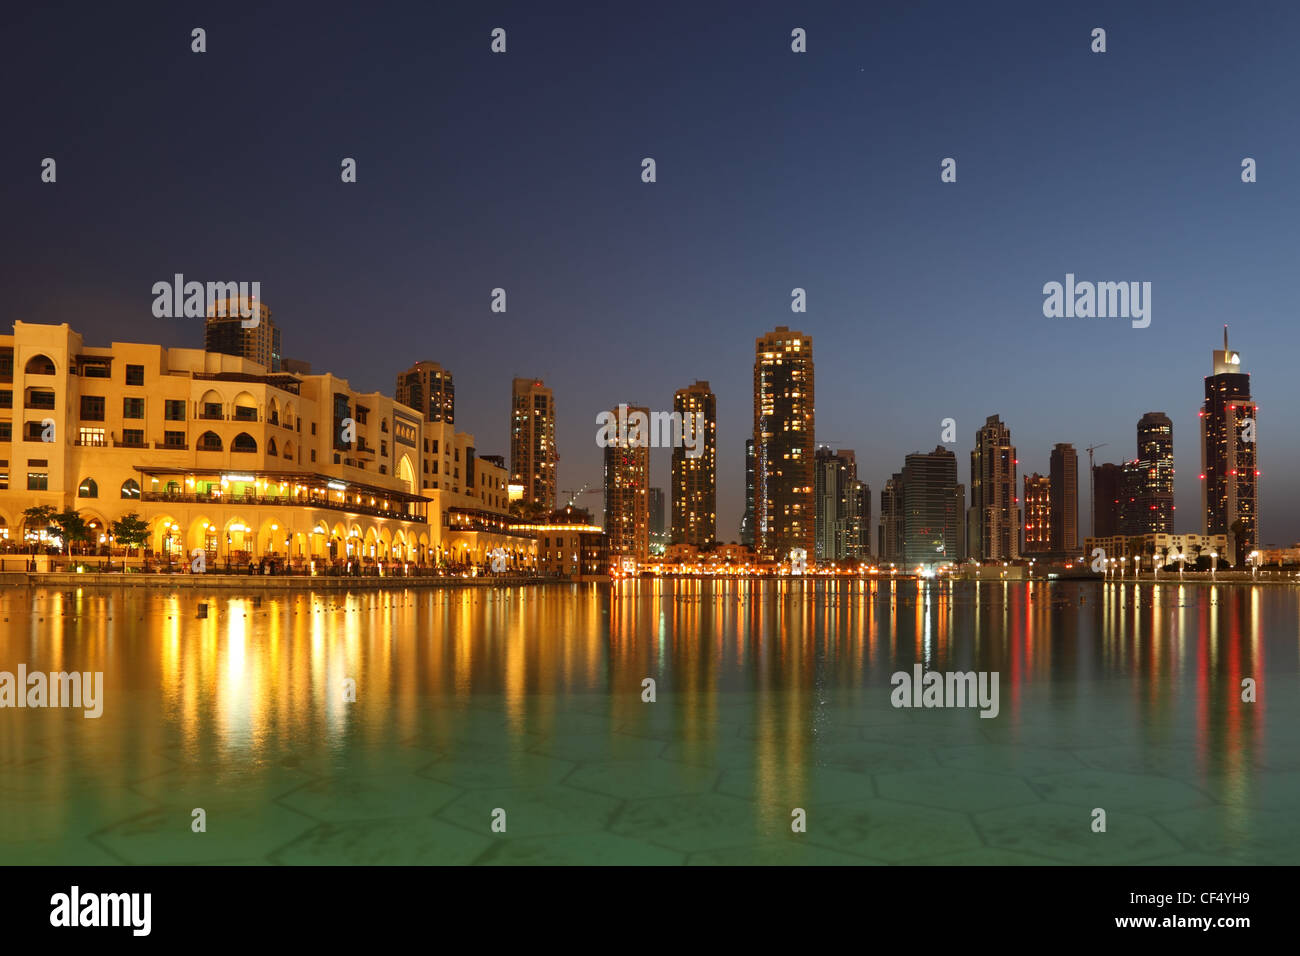 Dubai skyscrapers and other buildings at night time, view from water - Stock Image